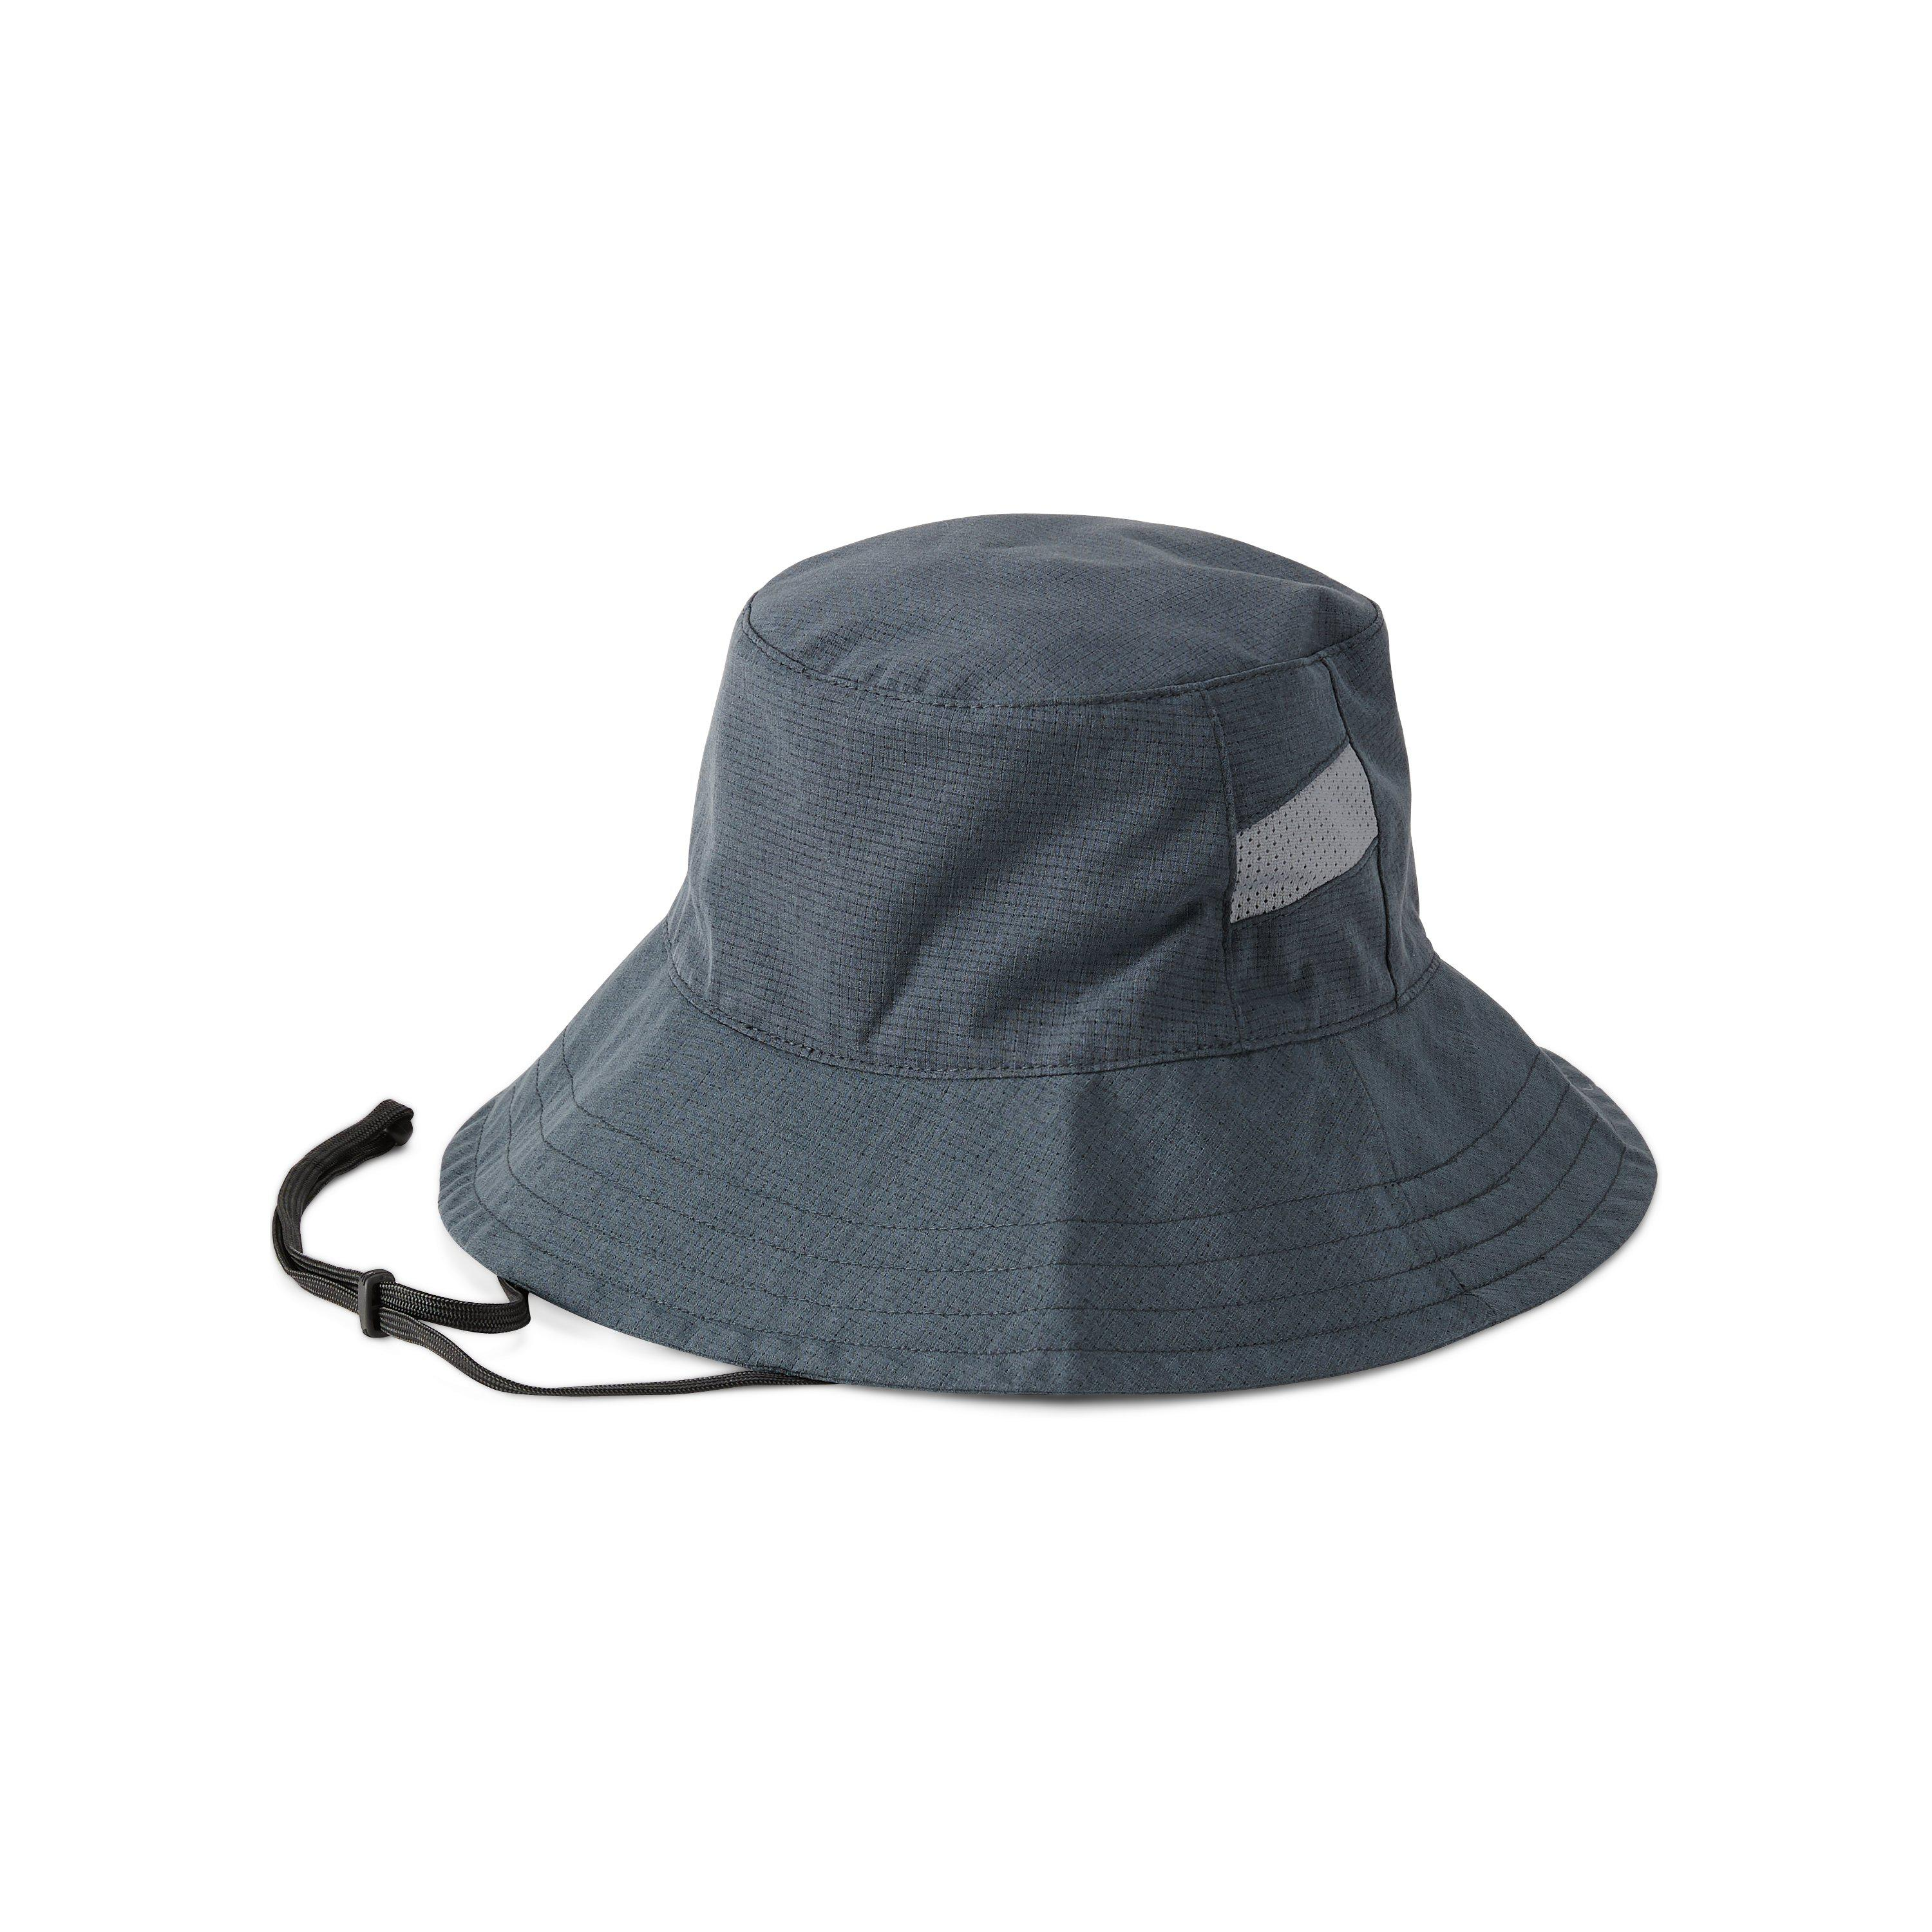 65760d5836b Lyst - Under Armour Men s Ua Coolswitch Amourventtm Fish Bucket Hat ...